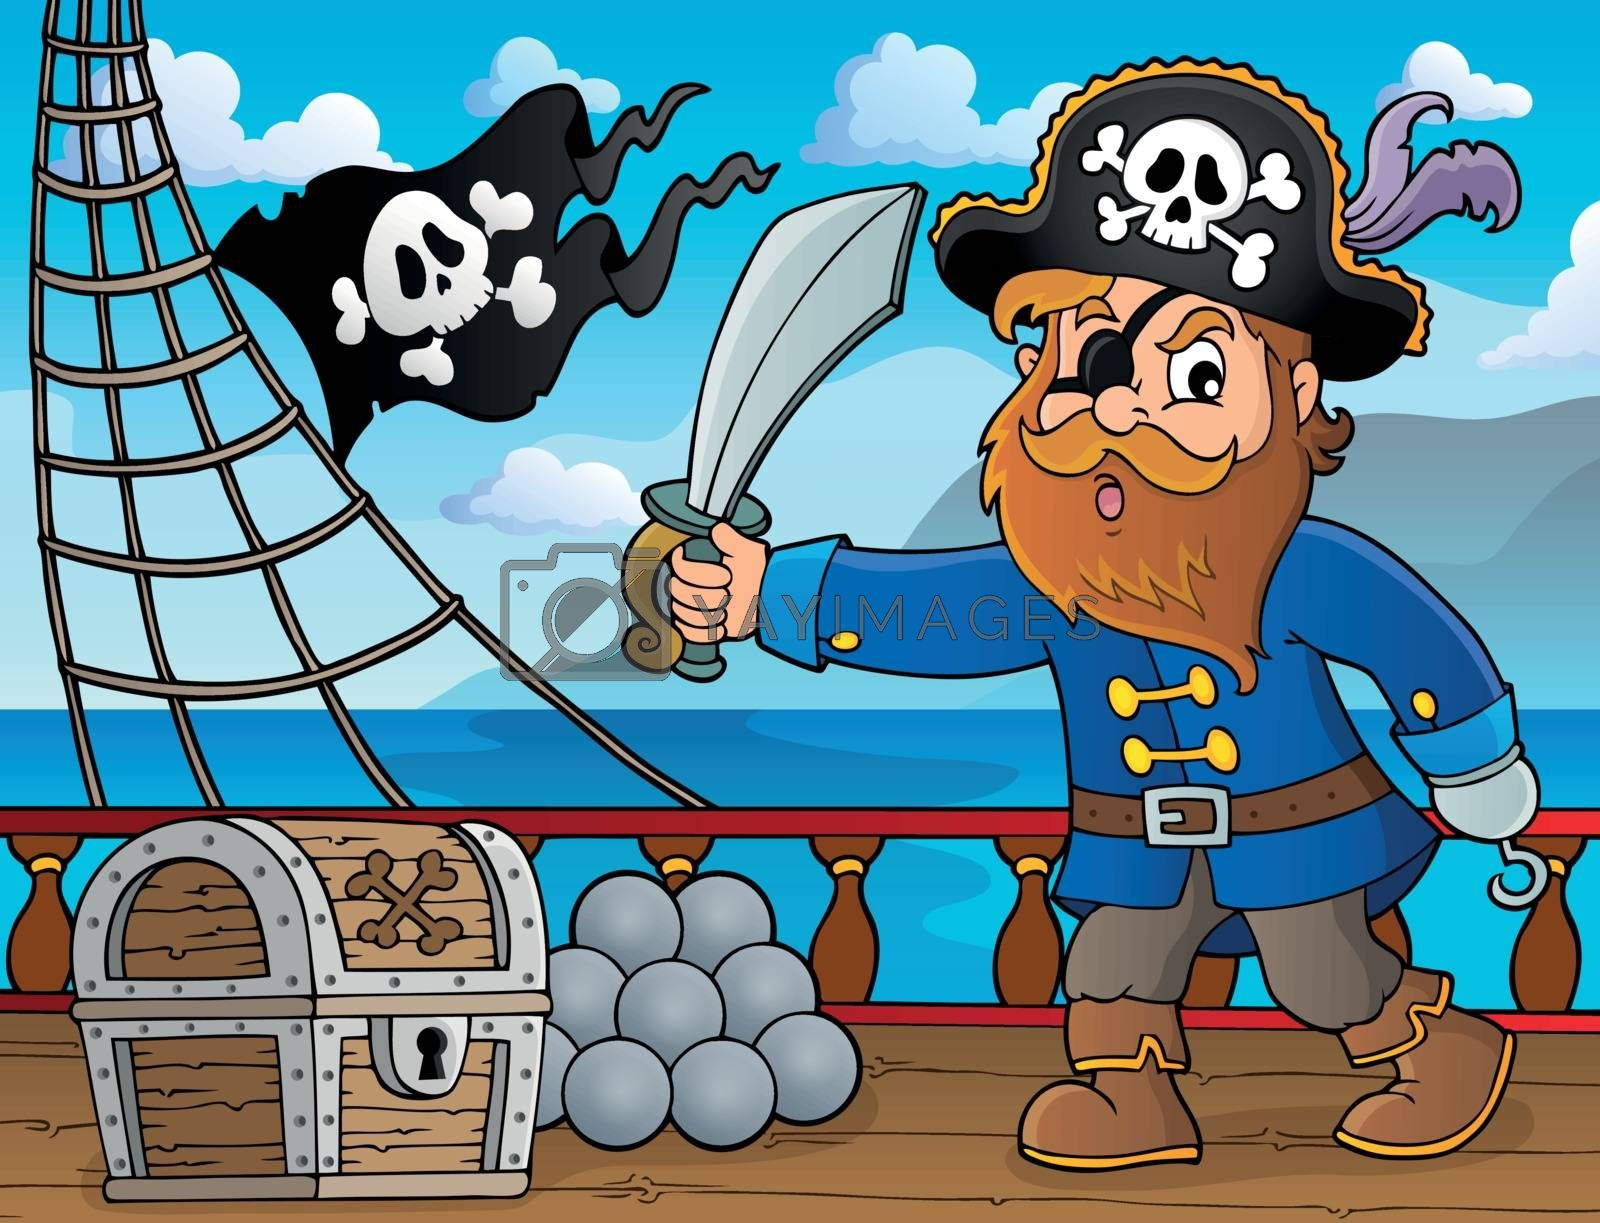 Pirate holding sabre theme 4 - eps10 vector illustration.